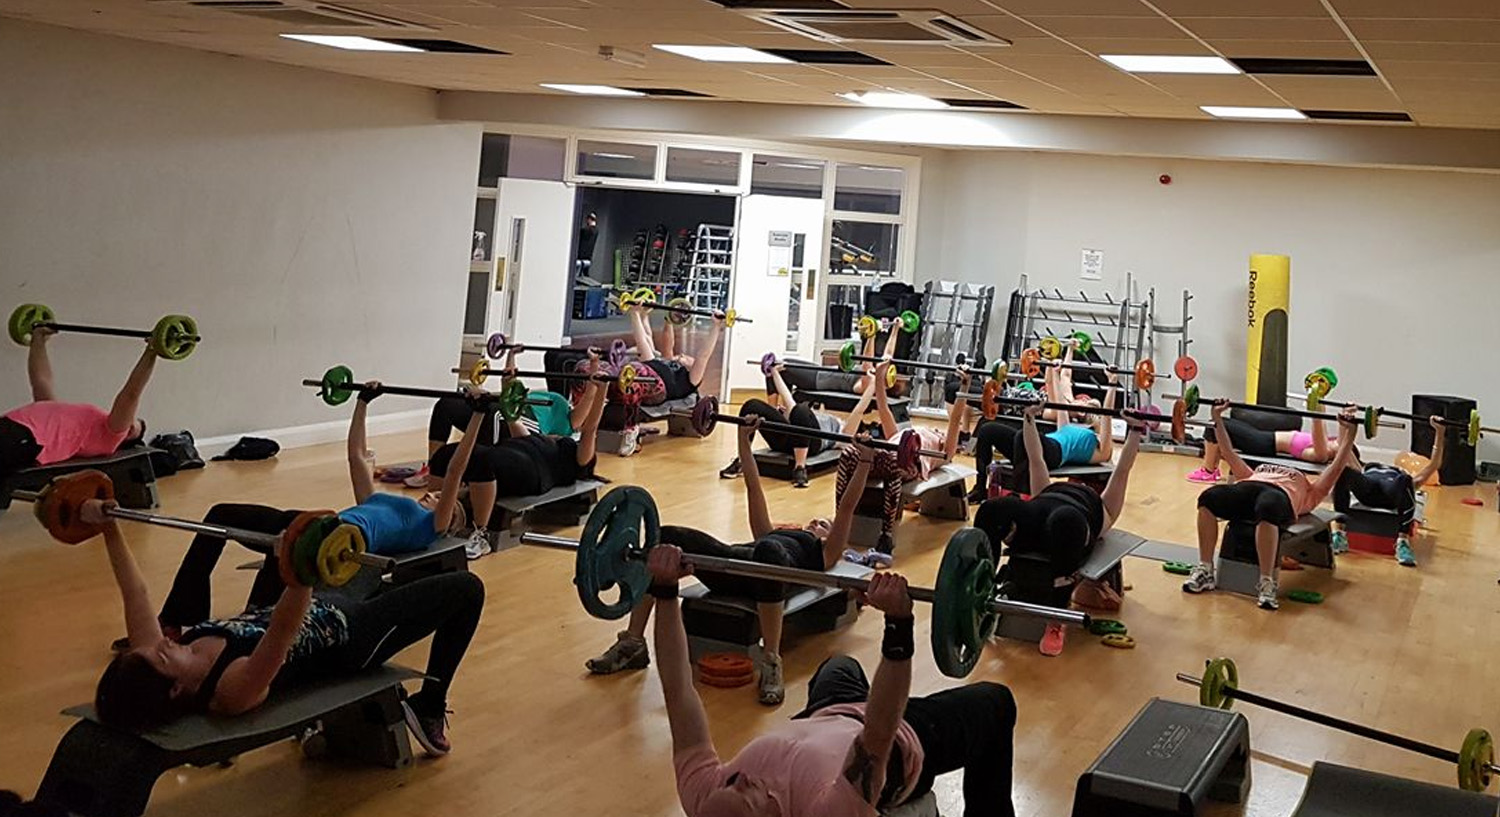 Simply Gym Swindon - Weights Class